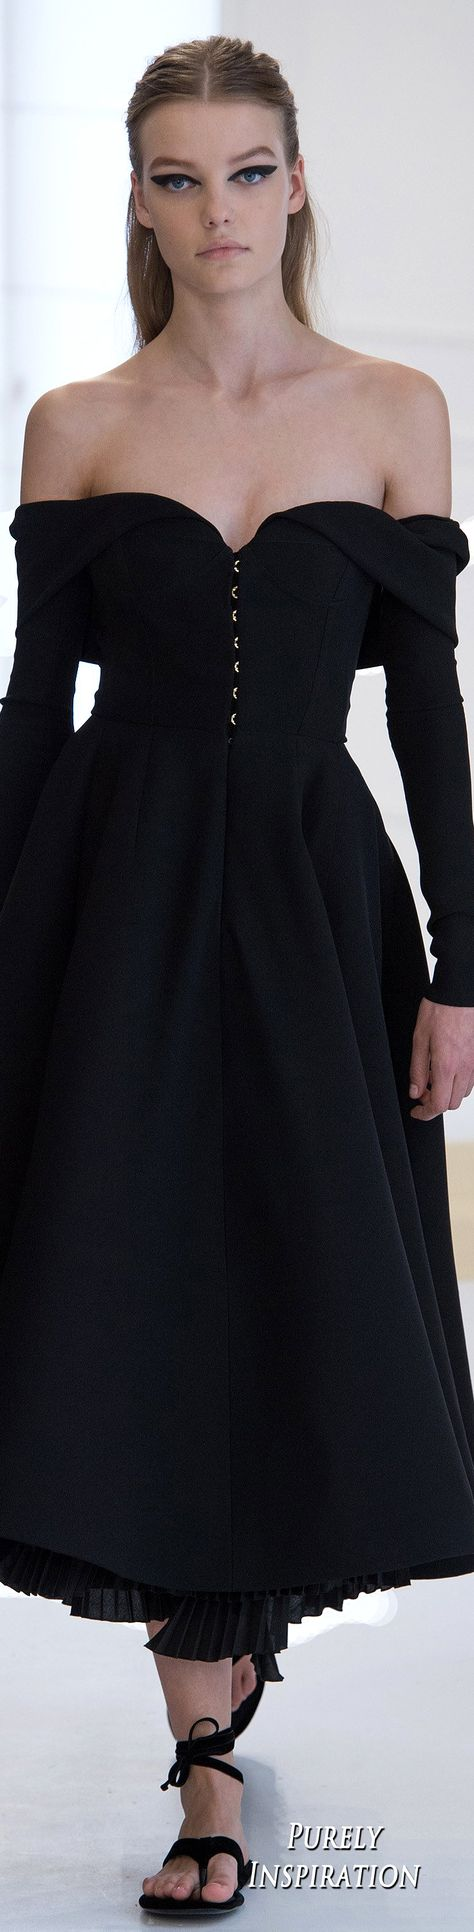 Christian Dior Haute Couture FW2016   Purely Inspiration